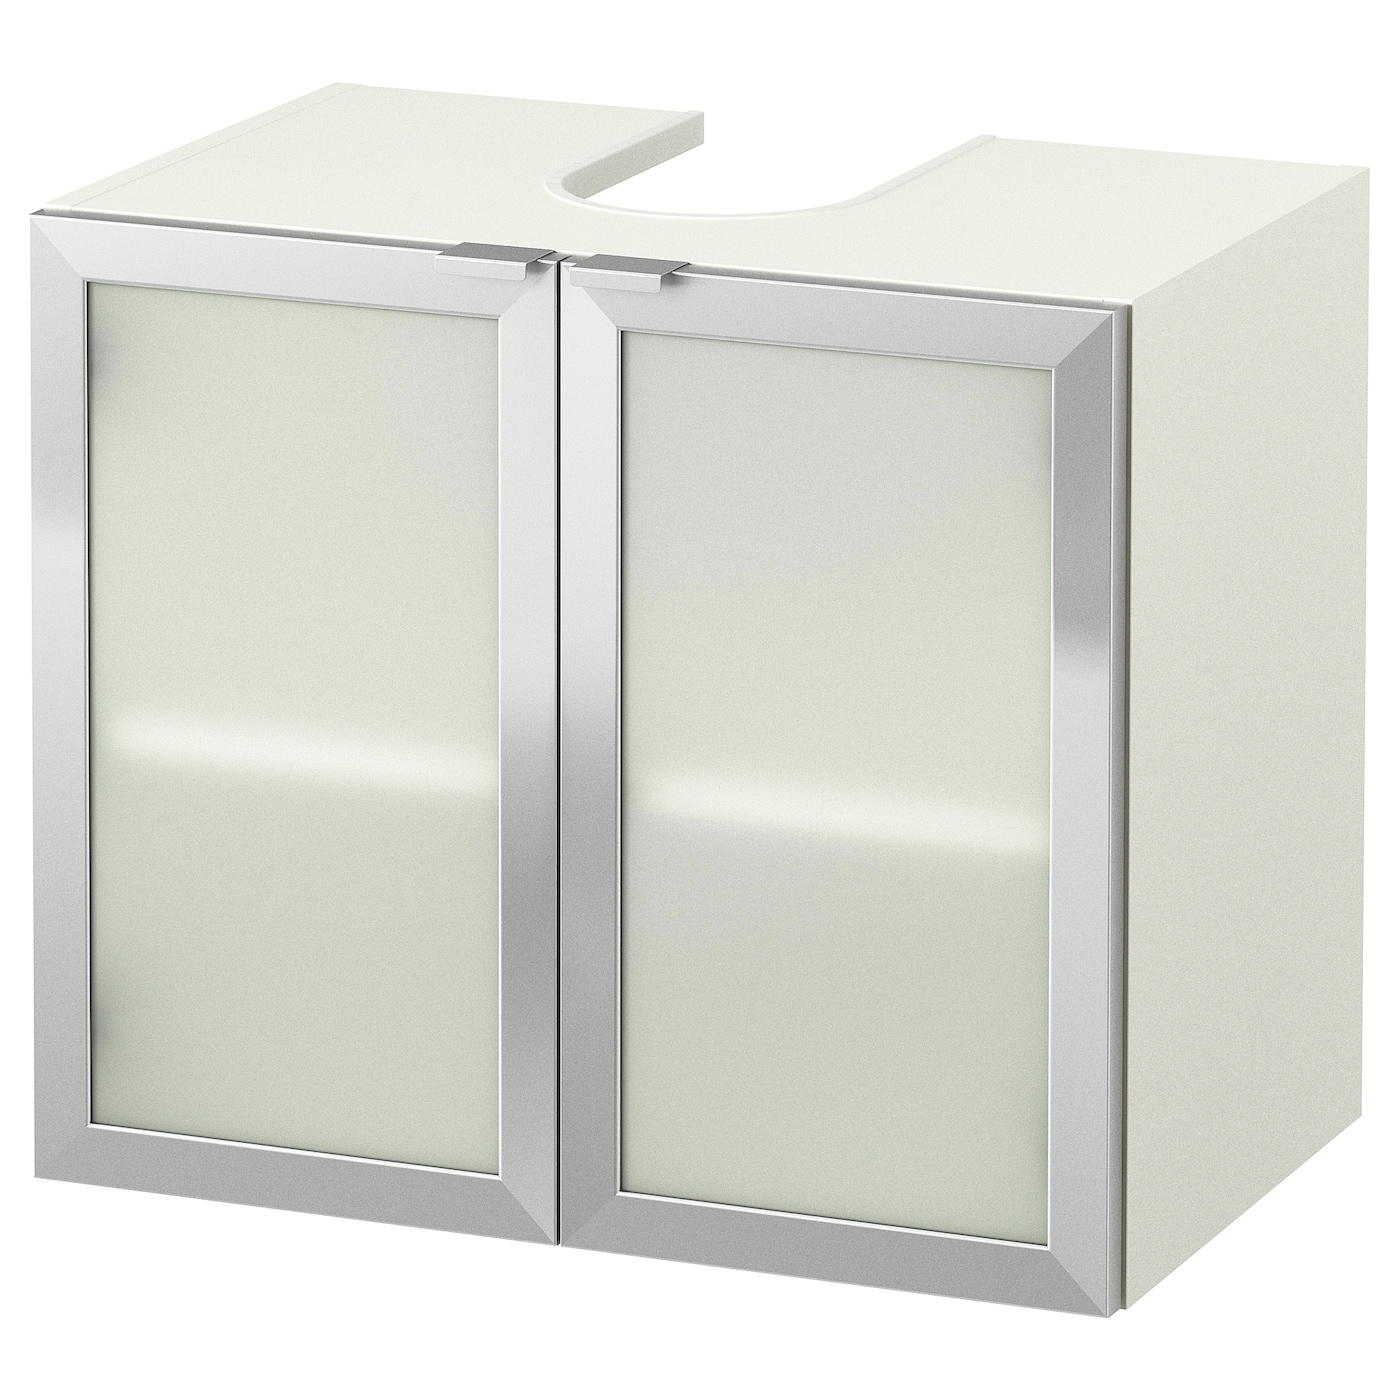 IKEA LILLÅNGEN wash-basin base cabinet w 2 doors Perfect in a small bathroom.